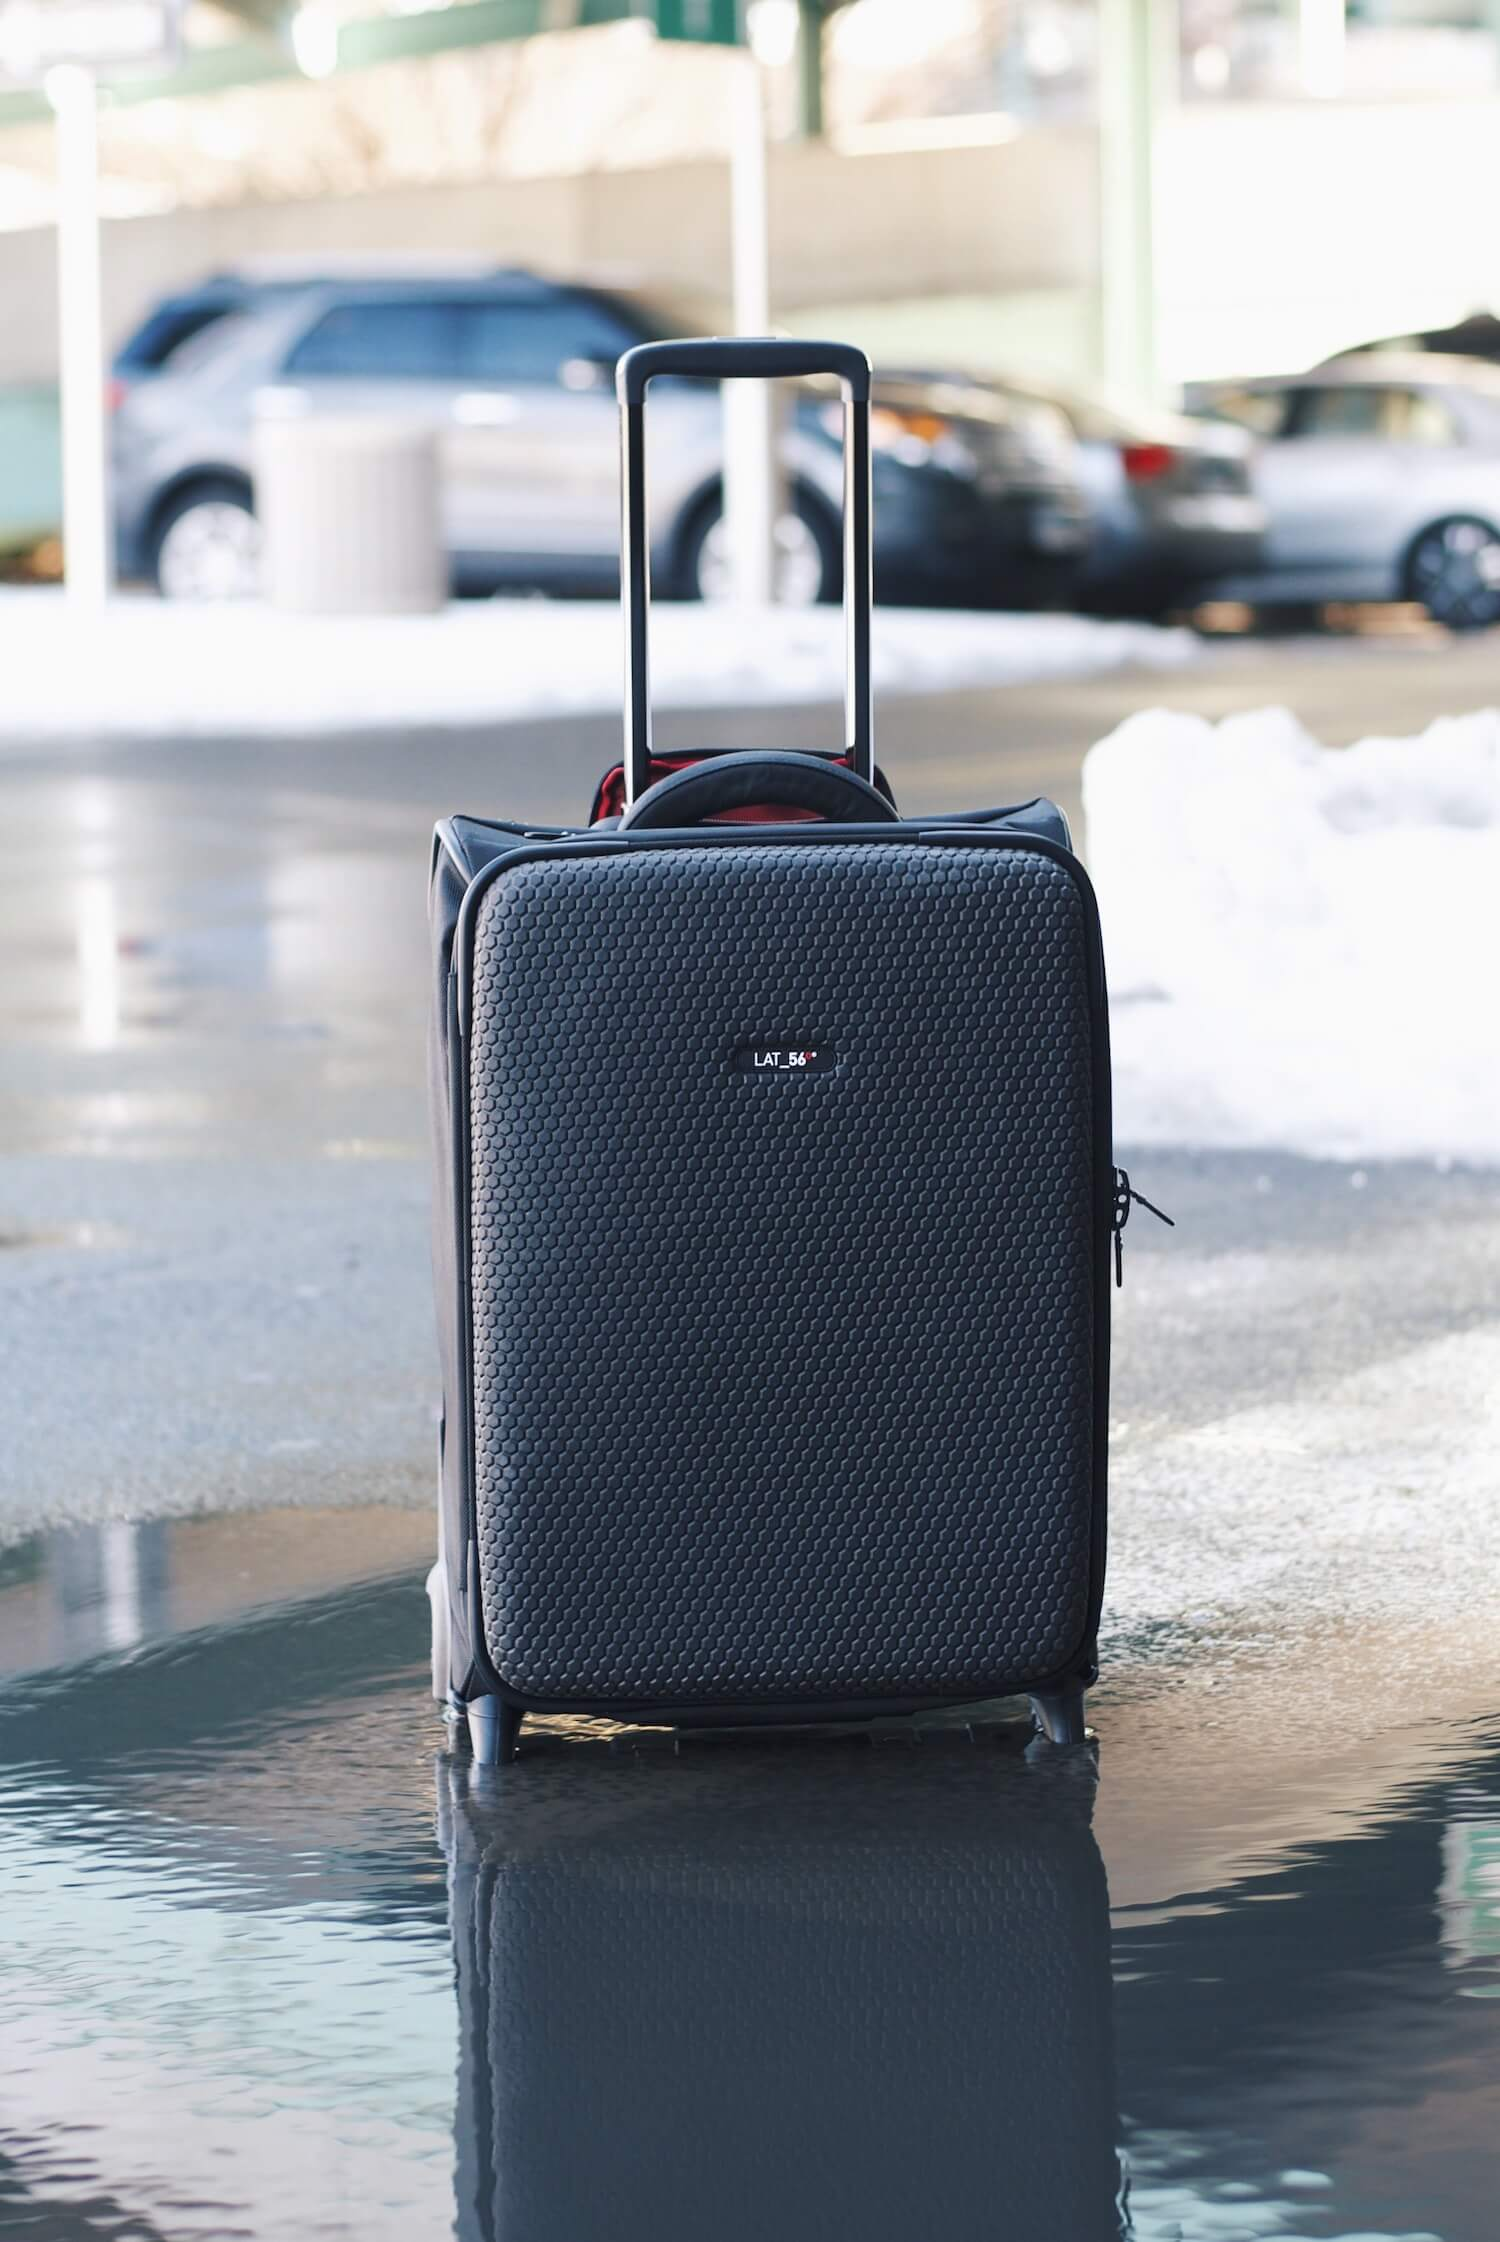 Lat_56 RW_01 Road Warrior Carry-On Garment Bag Review